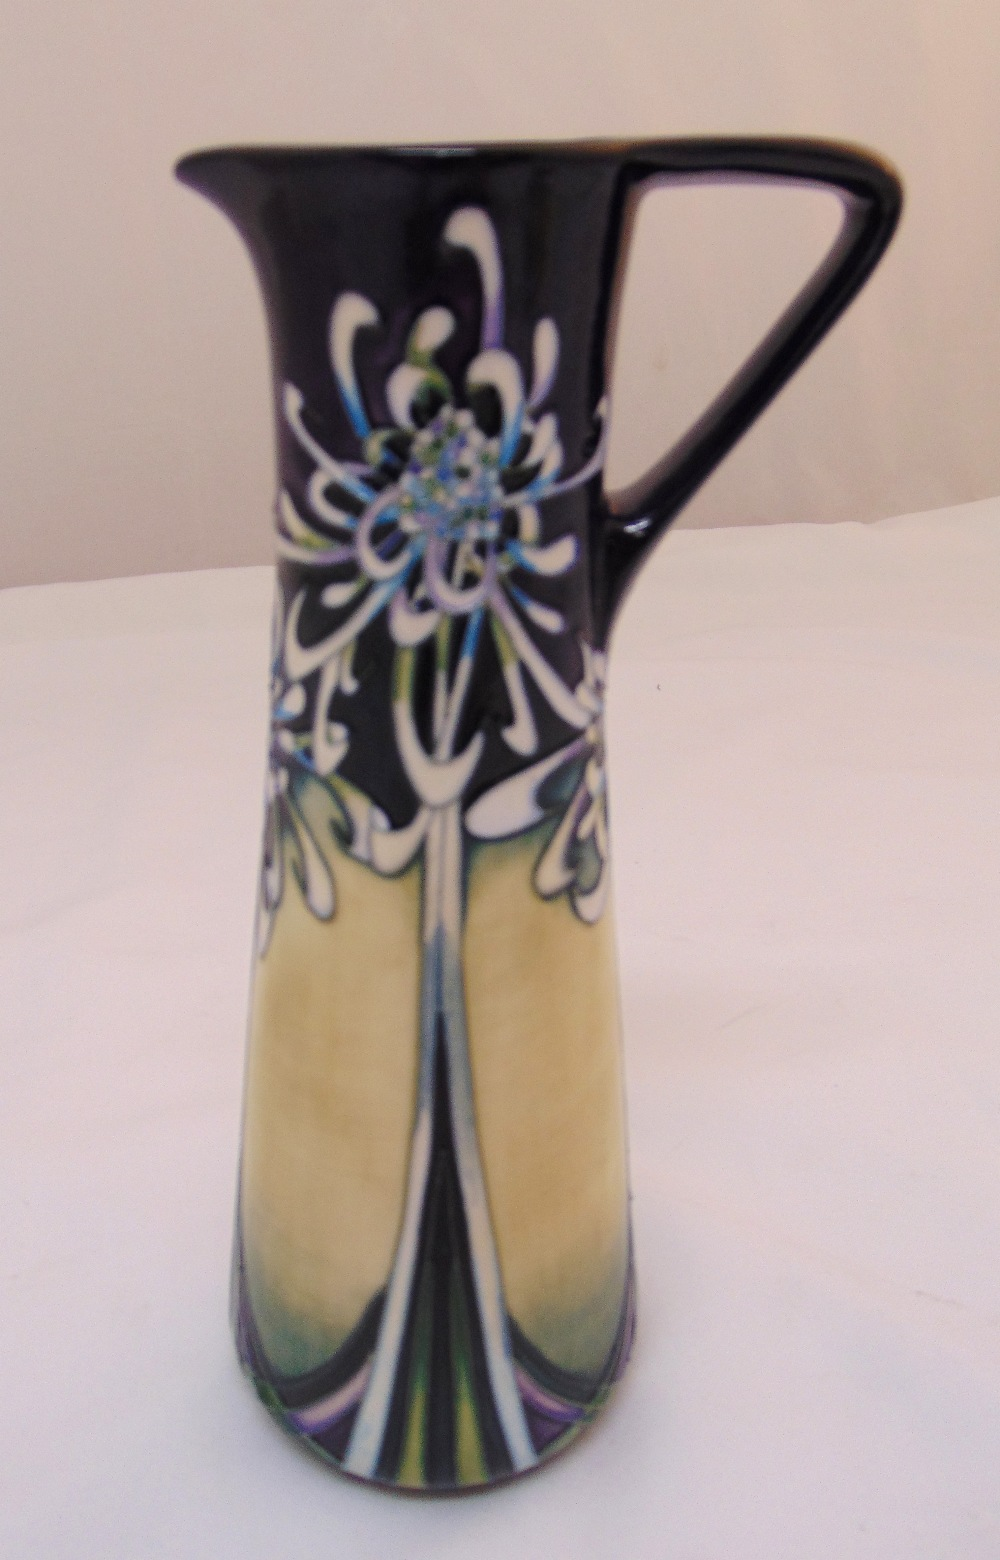 Moorcroft Art Nouveau style ewer made for Gold Members Club, signed to the base, 23.5cm (h)